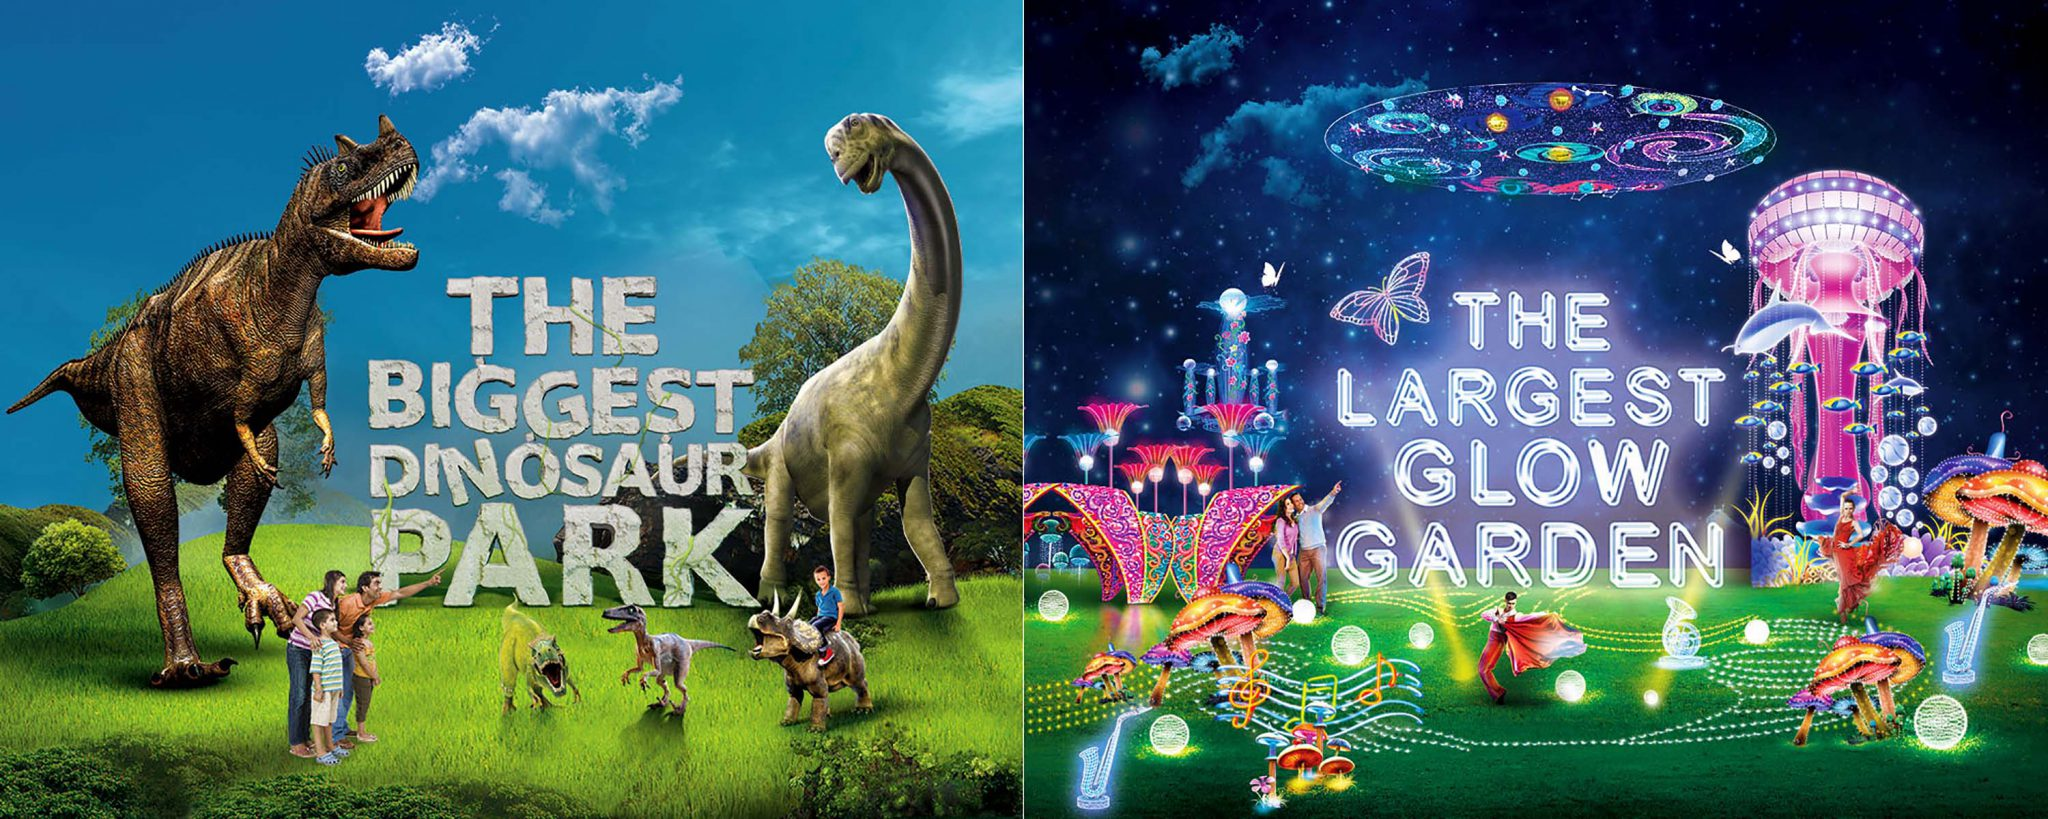 Dubai Garden Glow Season Two to Open with Dinosaur Park